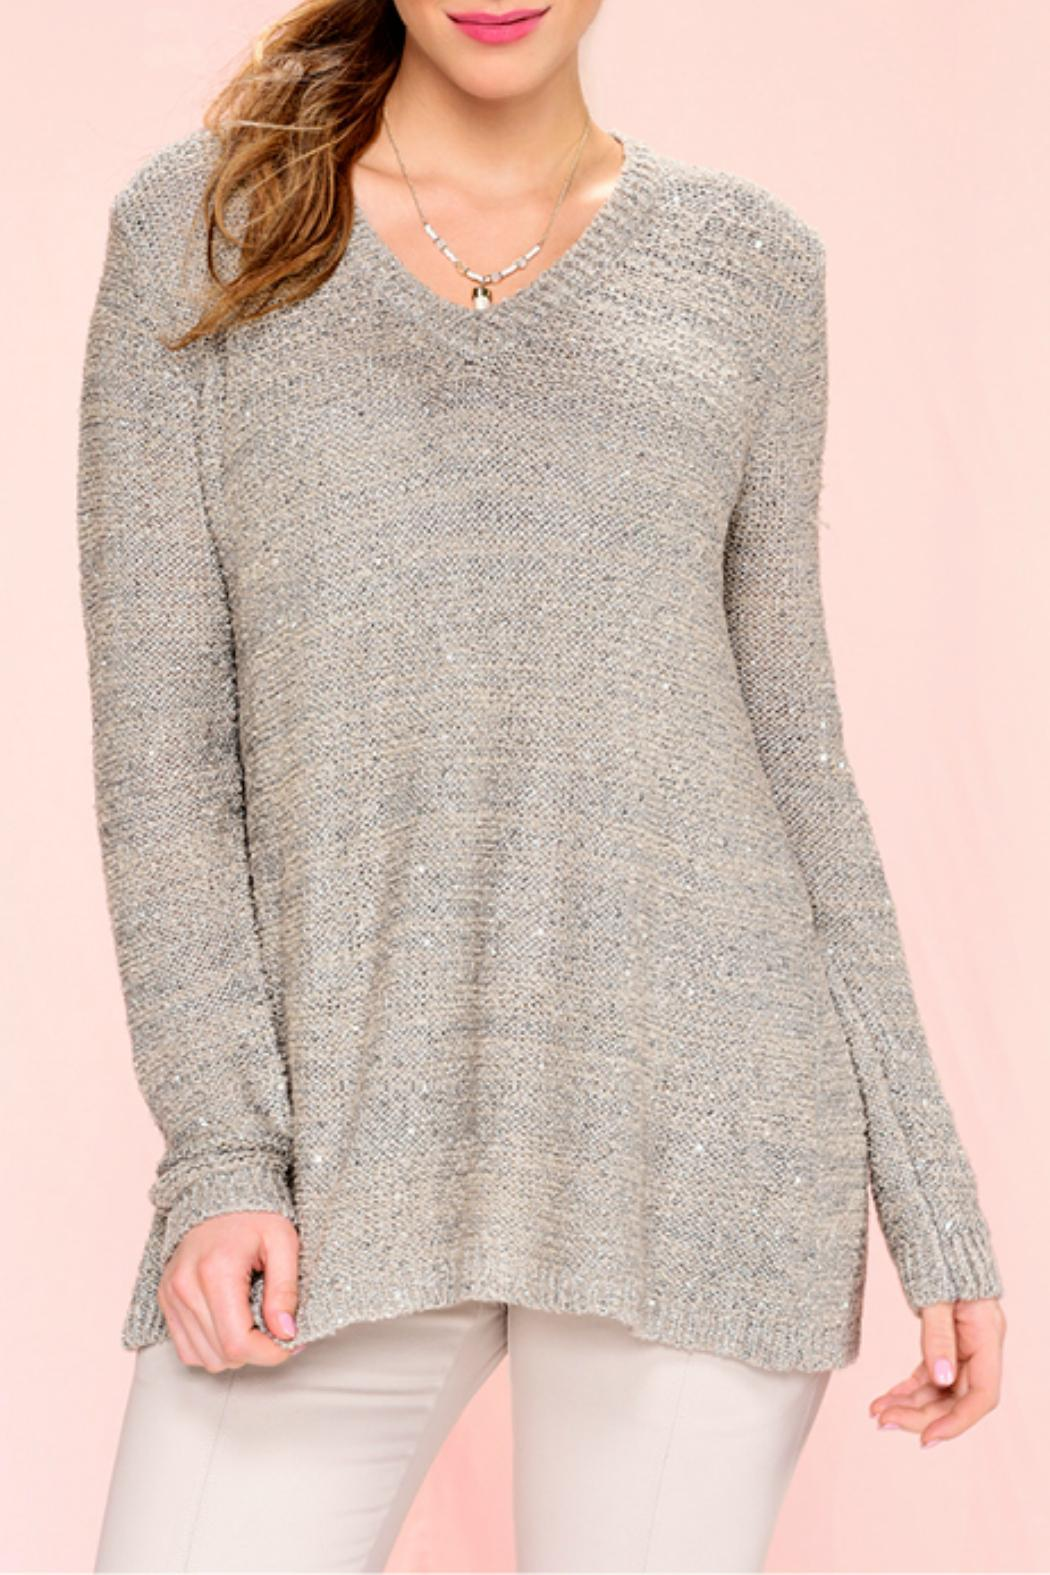 Charlie Paige Sequinned Knit Sweater - Main Image